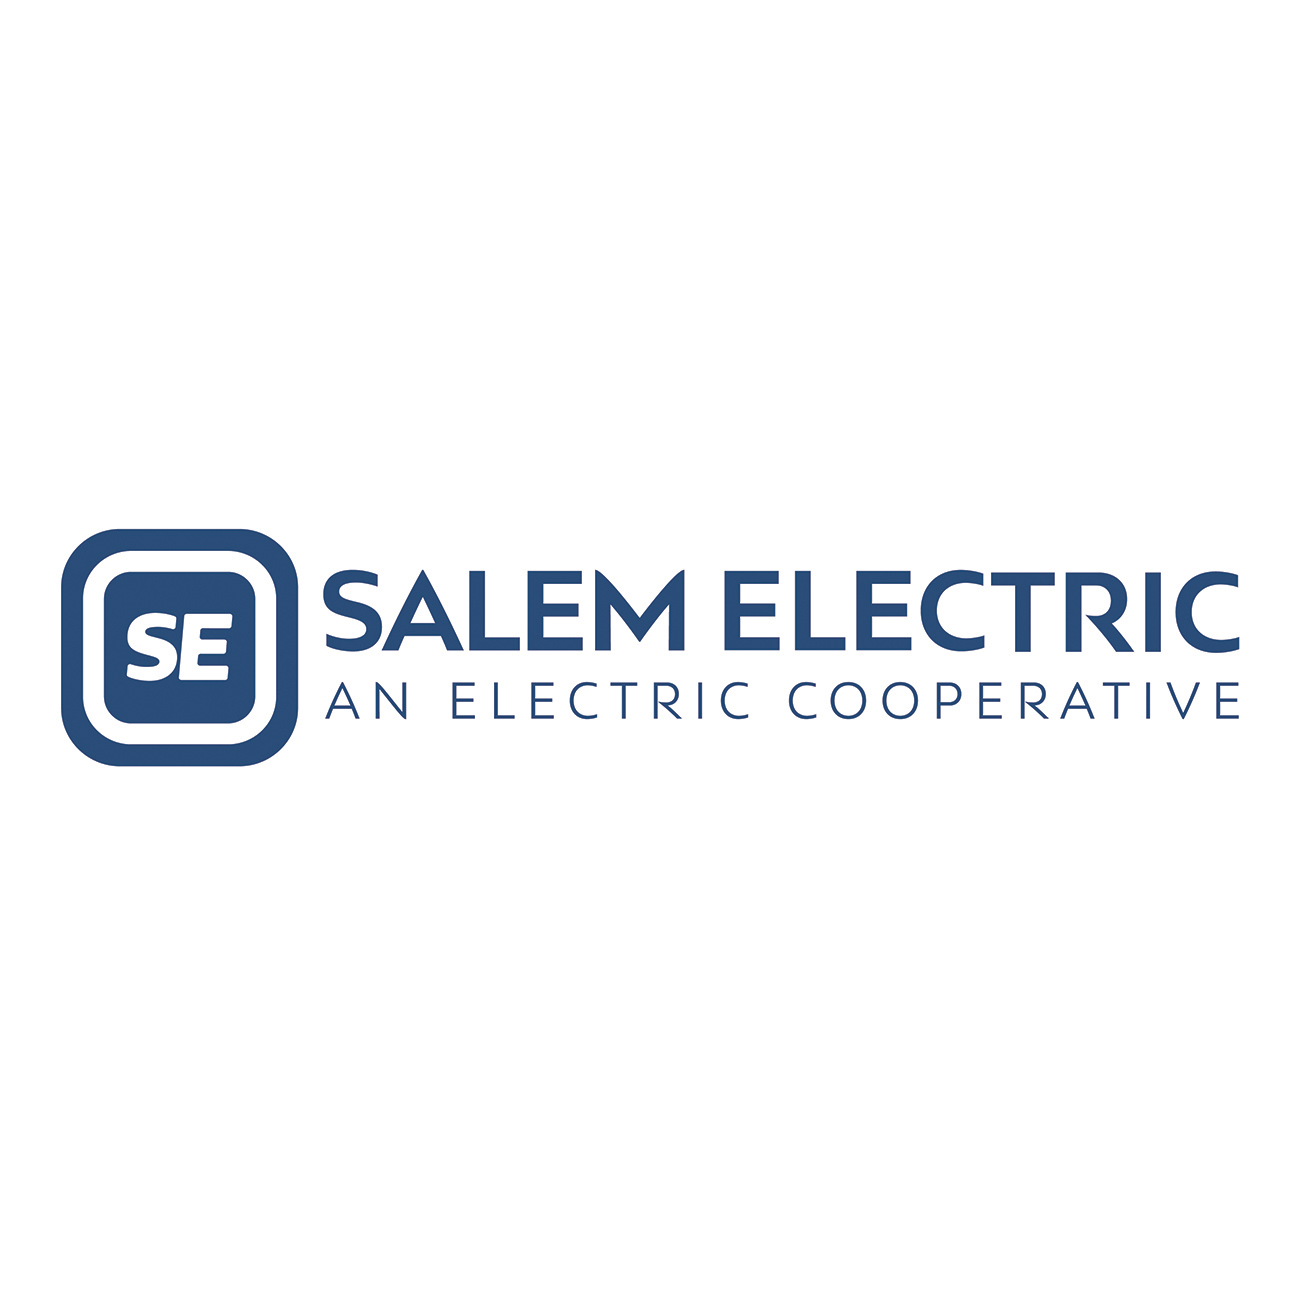 Salem Electric Logo Horizontal